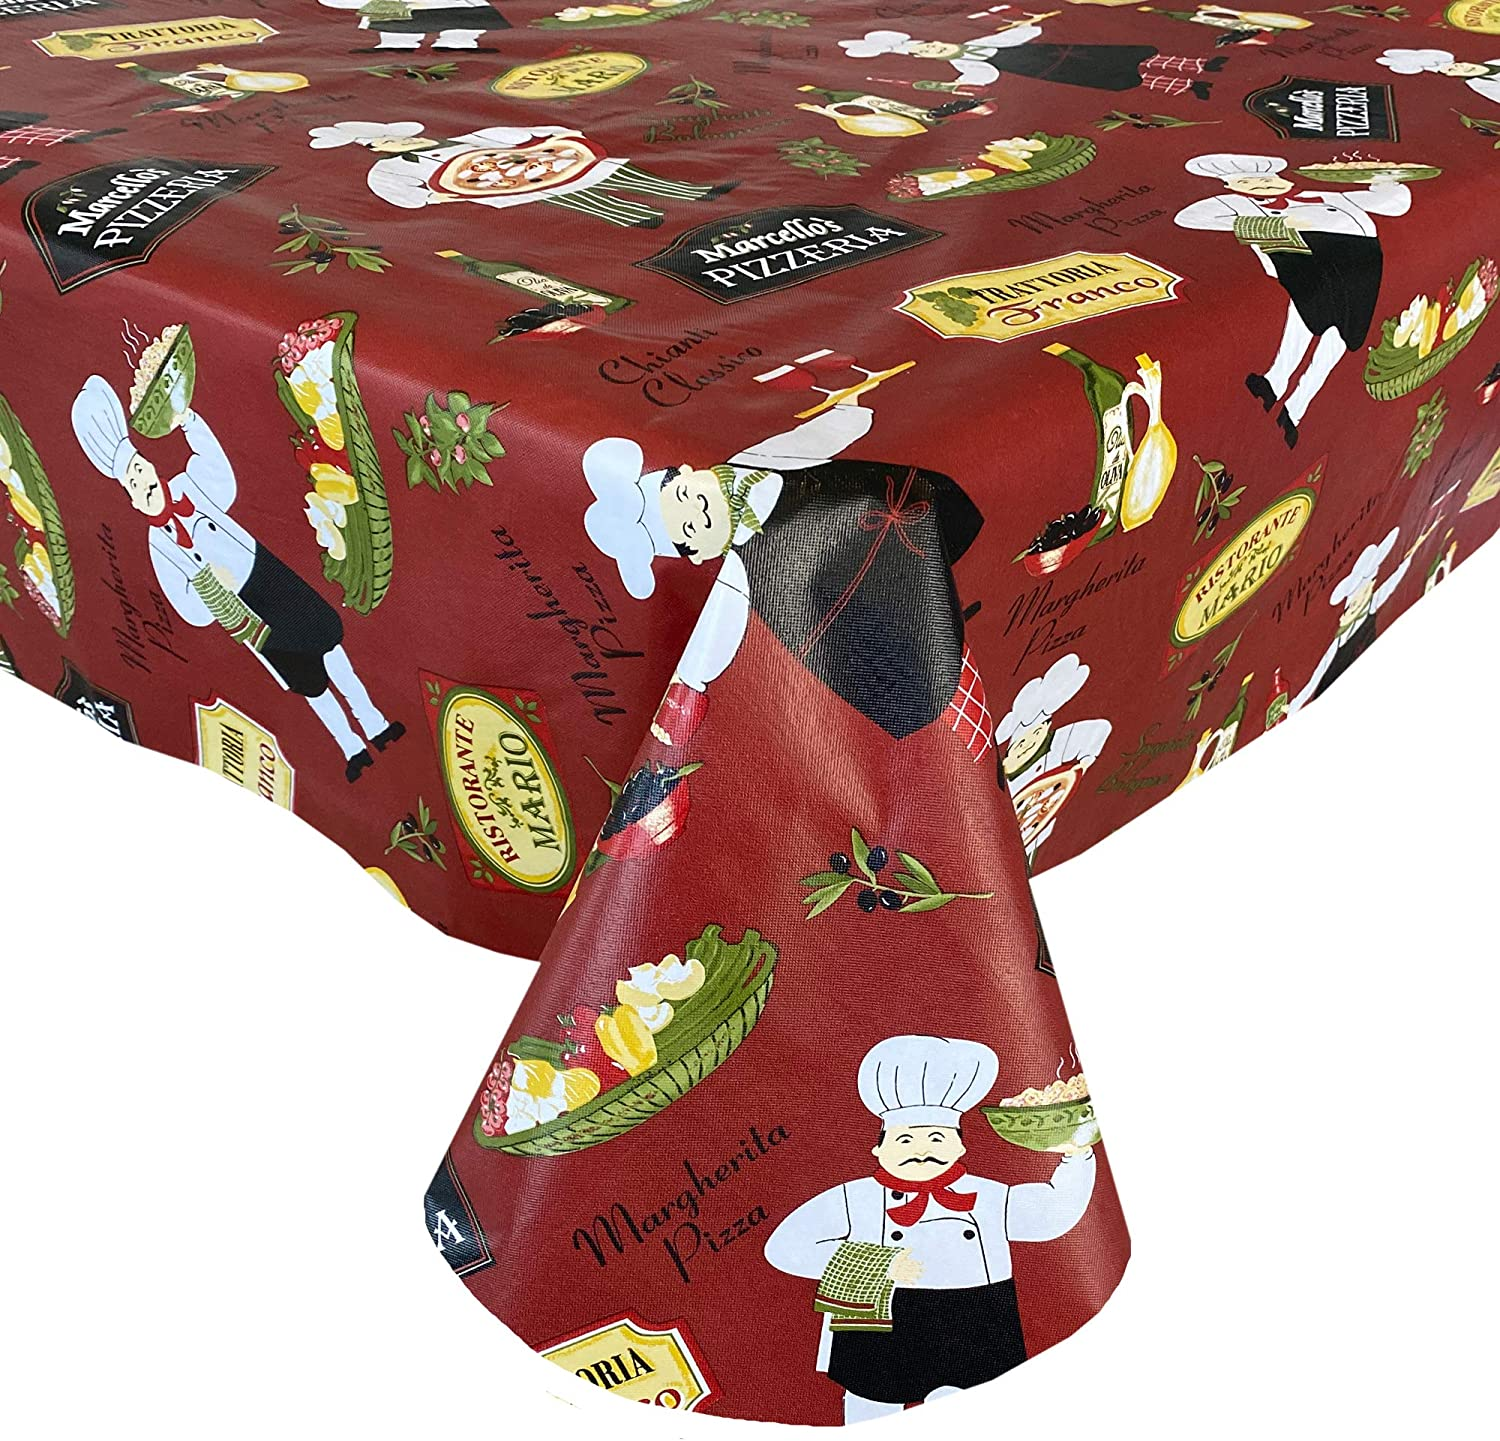 Newbridge Italian Red Bistro Chef Vinyl Flannel Backed Tablecloth, Novelty Chef Indoor/Outdoor Waterproof Tablecloth, Picnic, Barbeque, Patio and Kitchen Dining, 60 Inch x 102 Inch Oblong/Rectangle